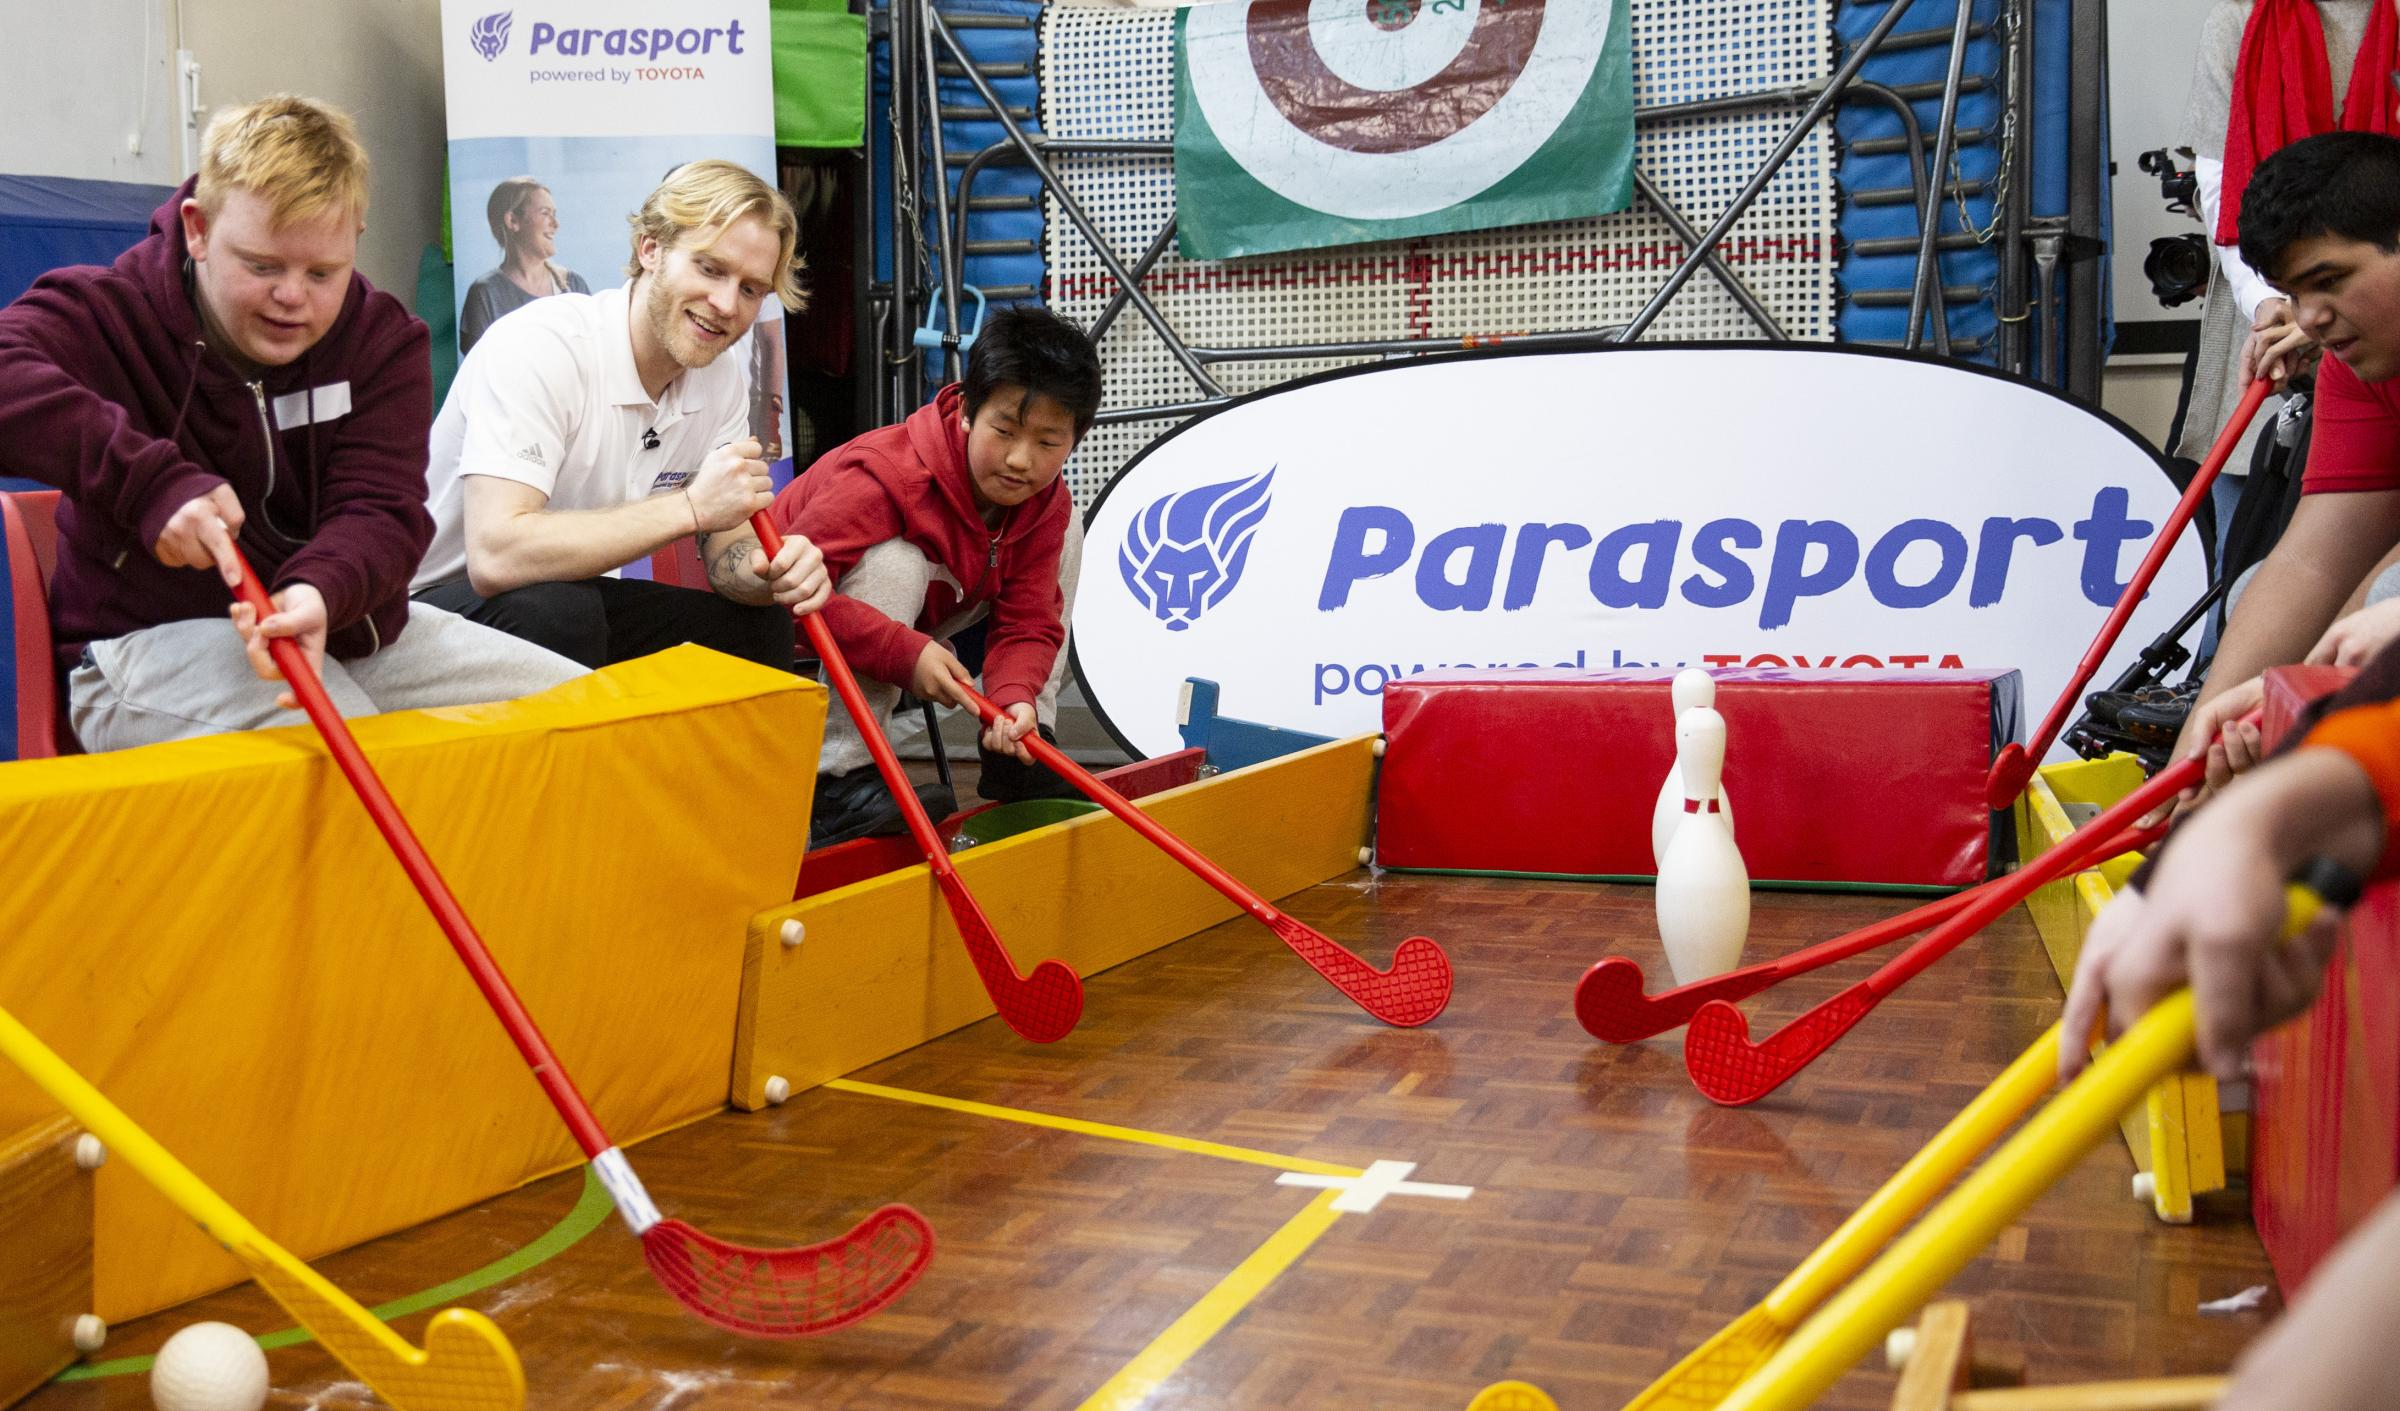 Jonny Peacock helped launch Parasport, which aims to improve access to disabled sport